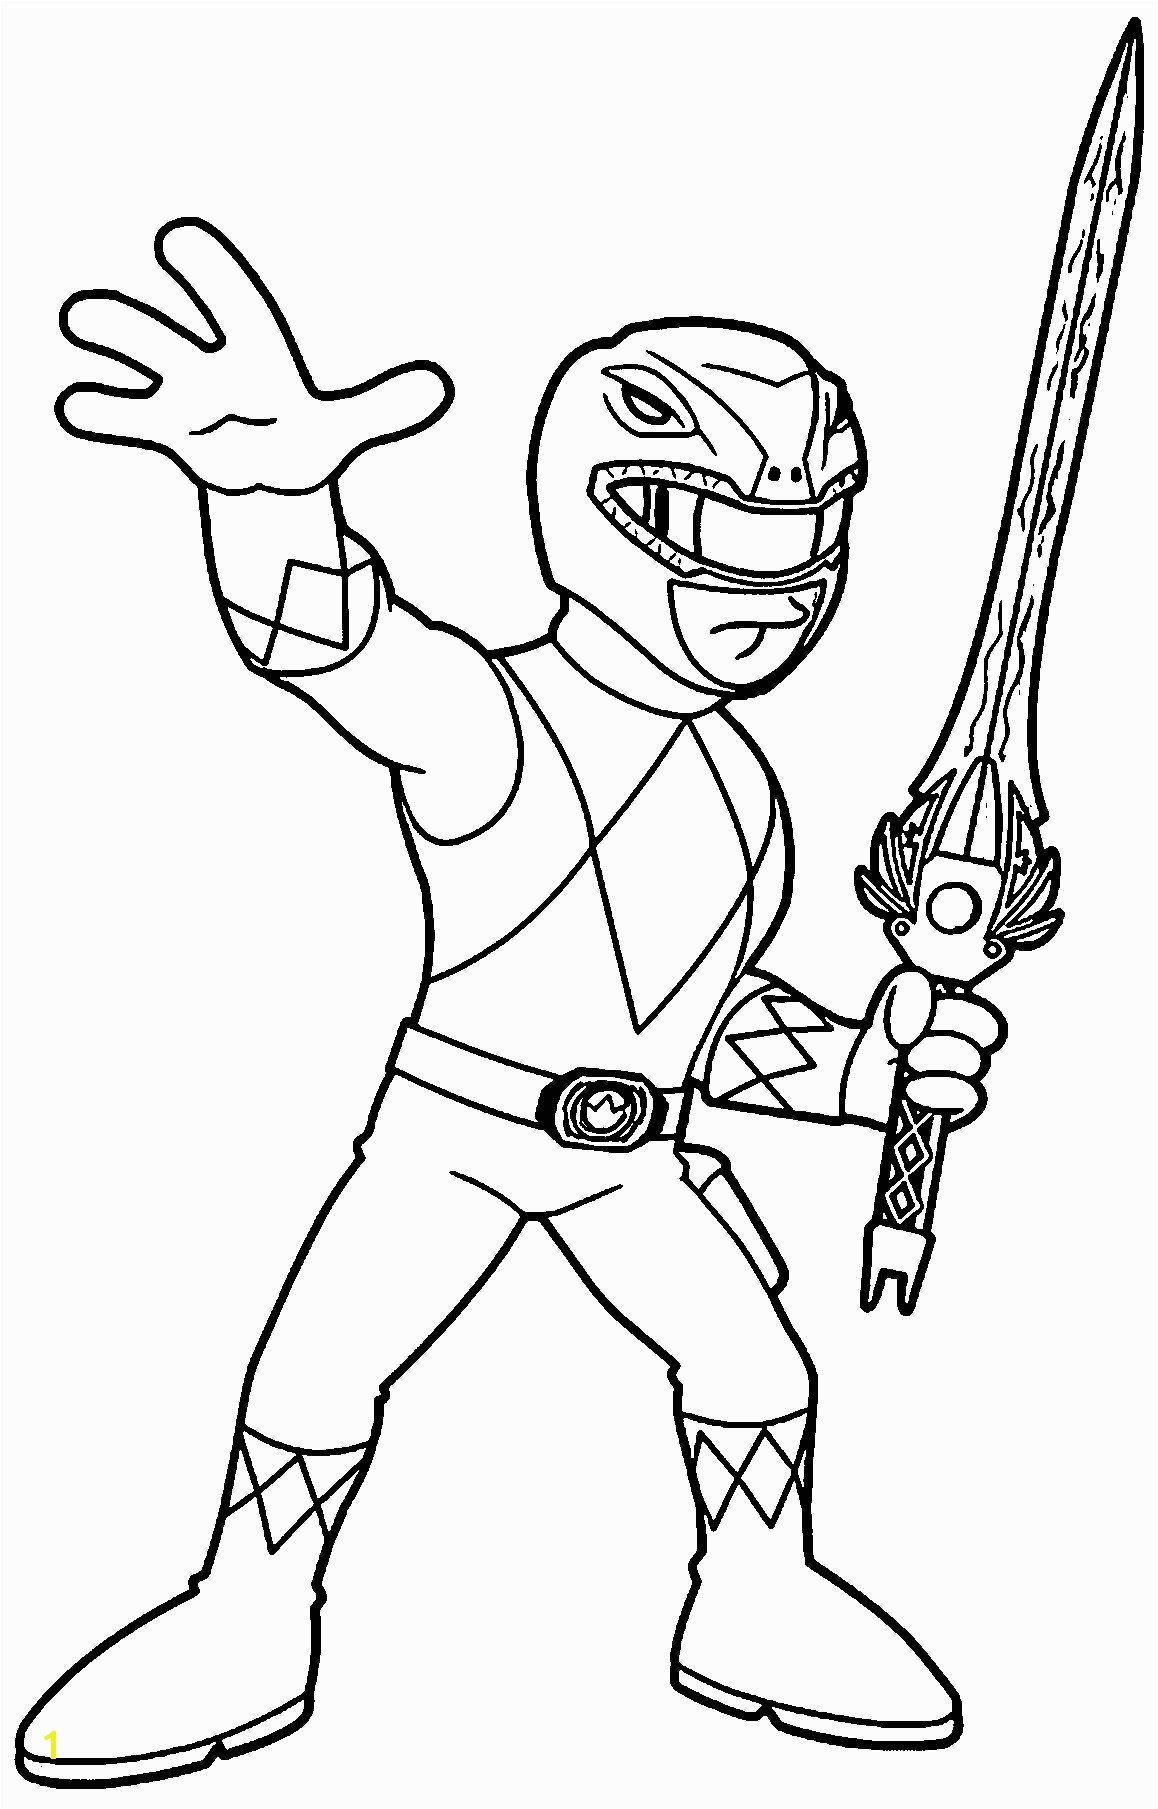 Green Power Ranger Coloring Pages Green Power Ranger Coloring Page Power Ranger Coloring Pages Nice